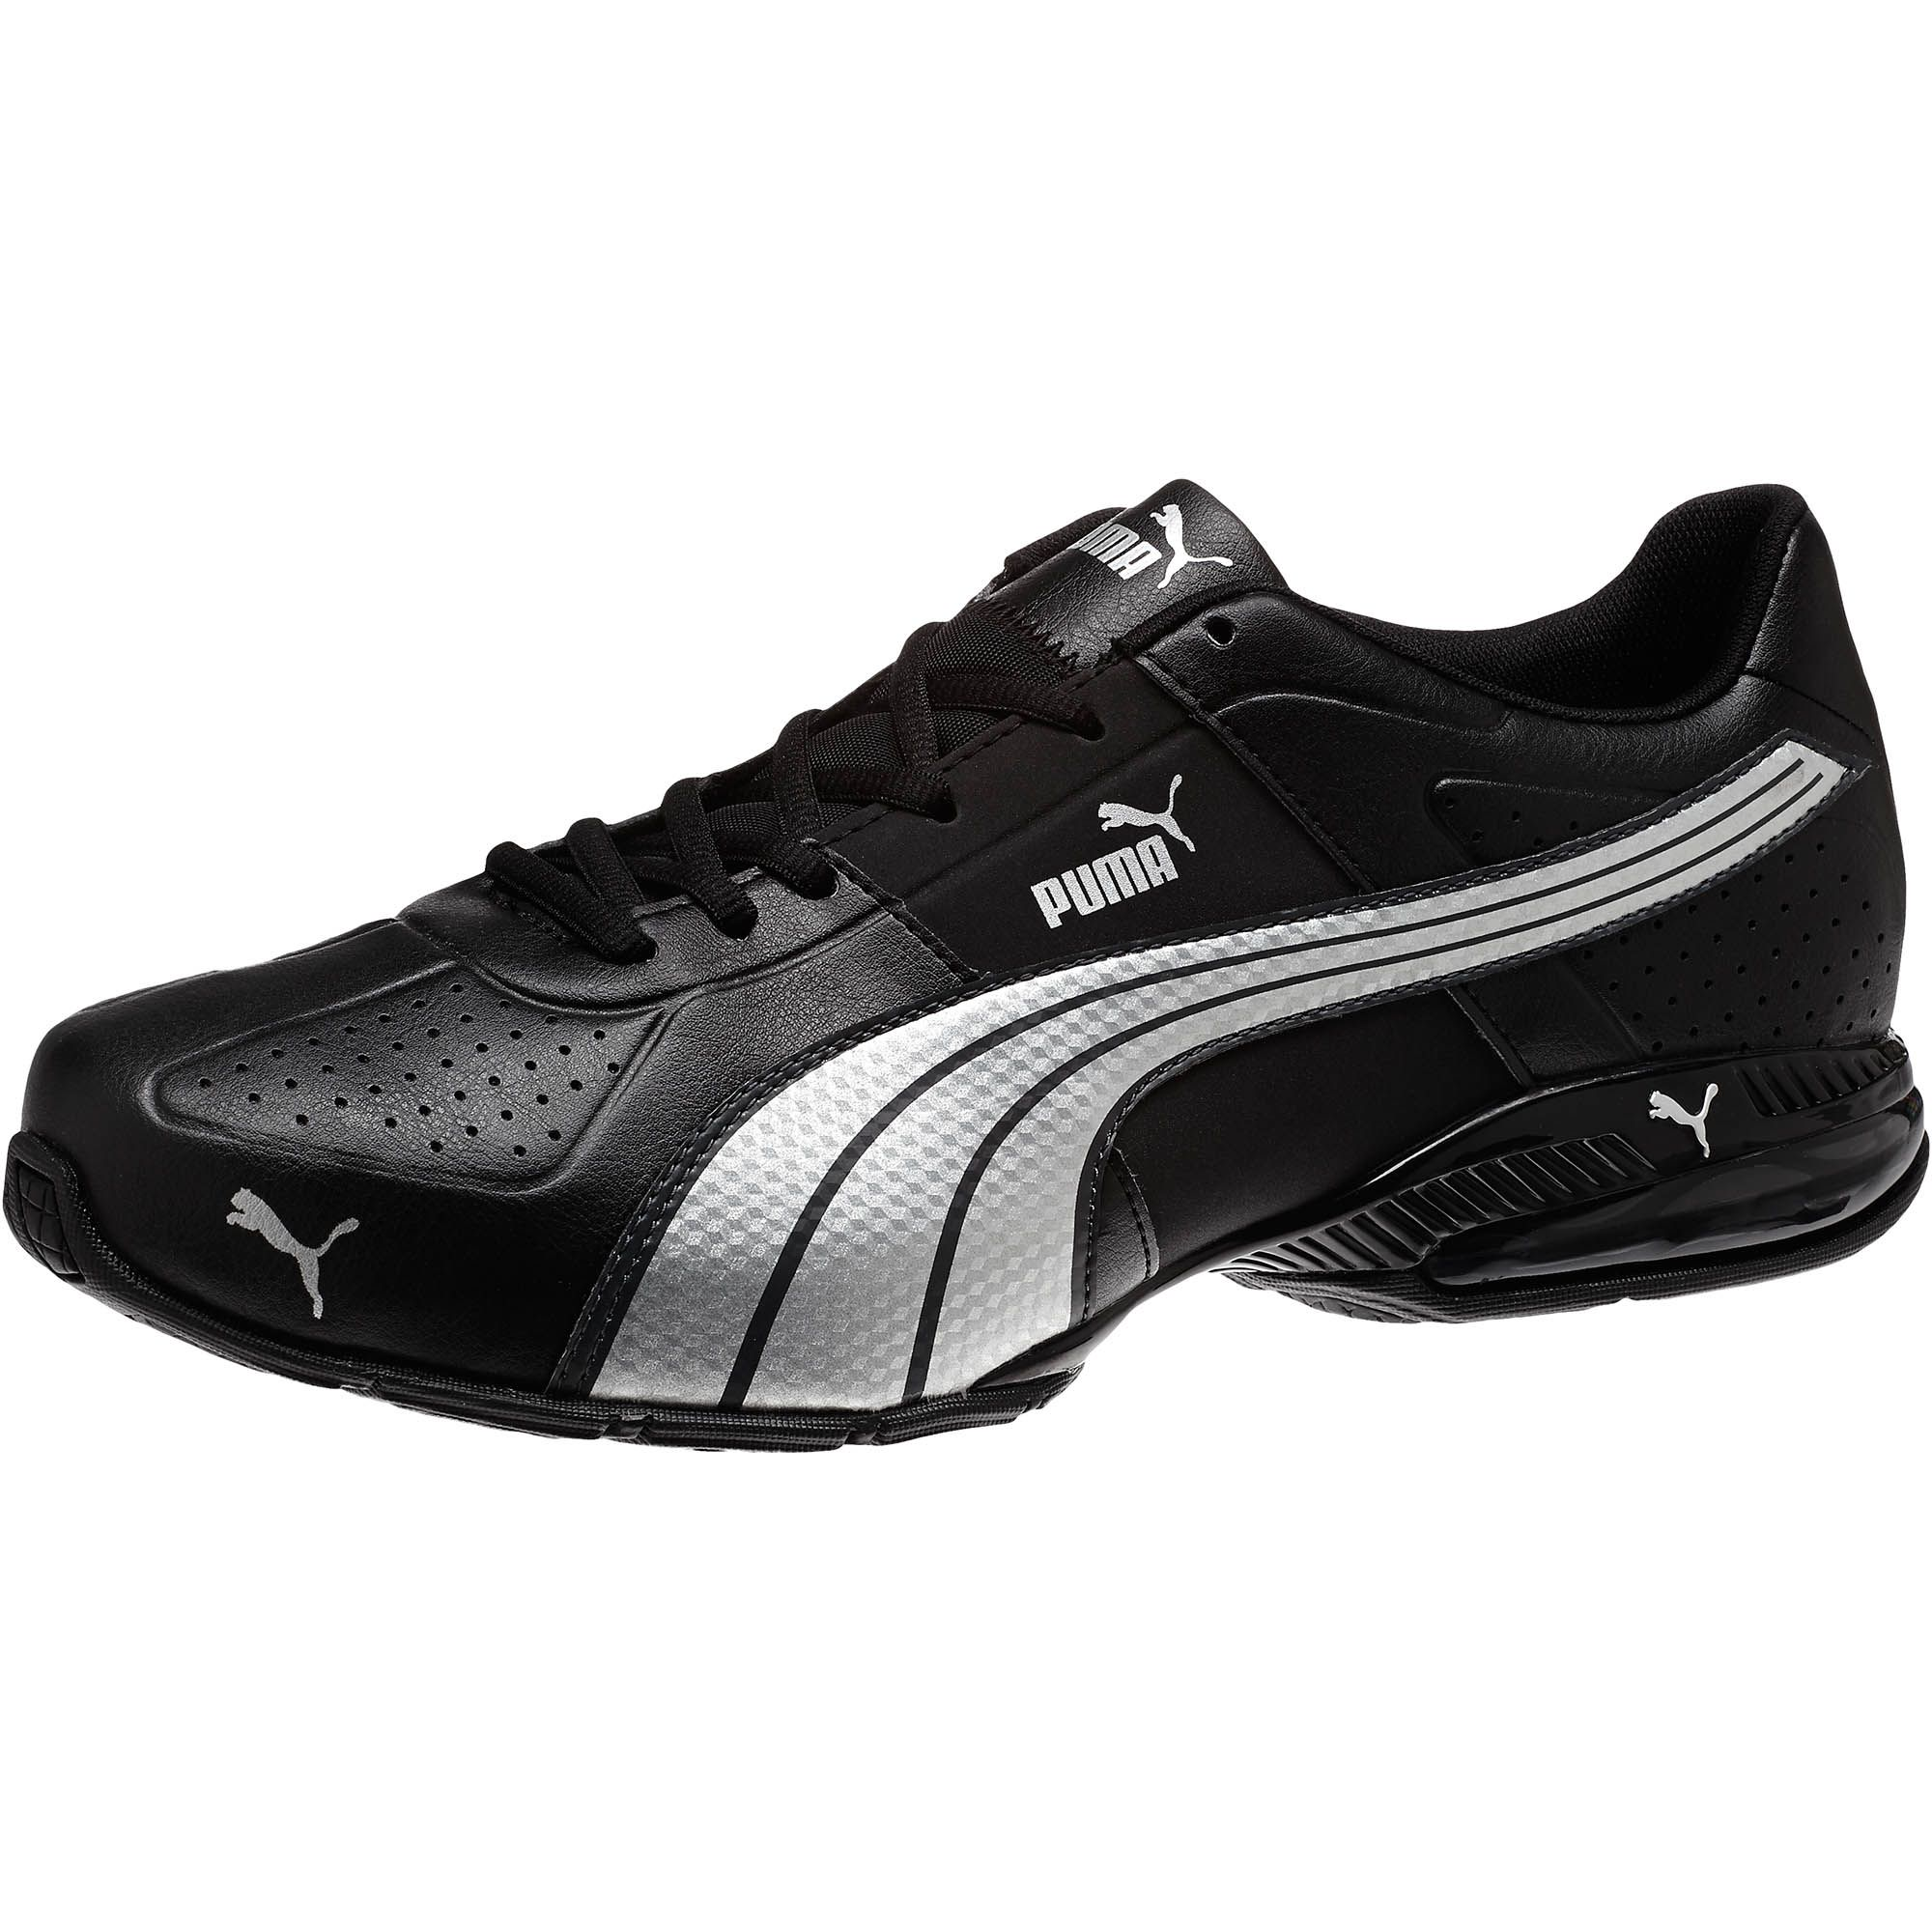 Puma Cell Surin Men' Running Shoes